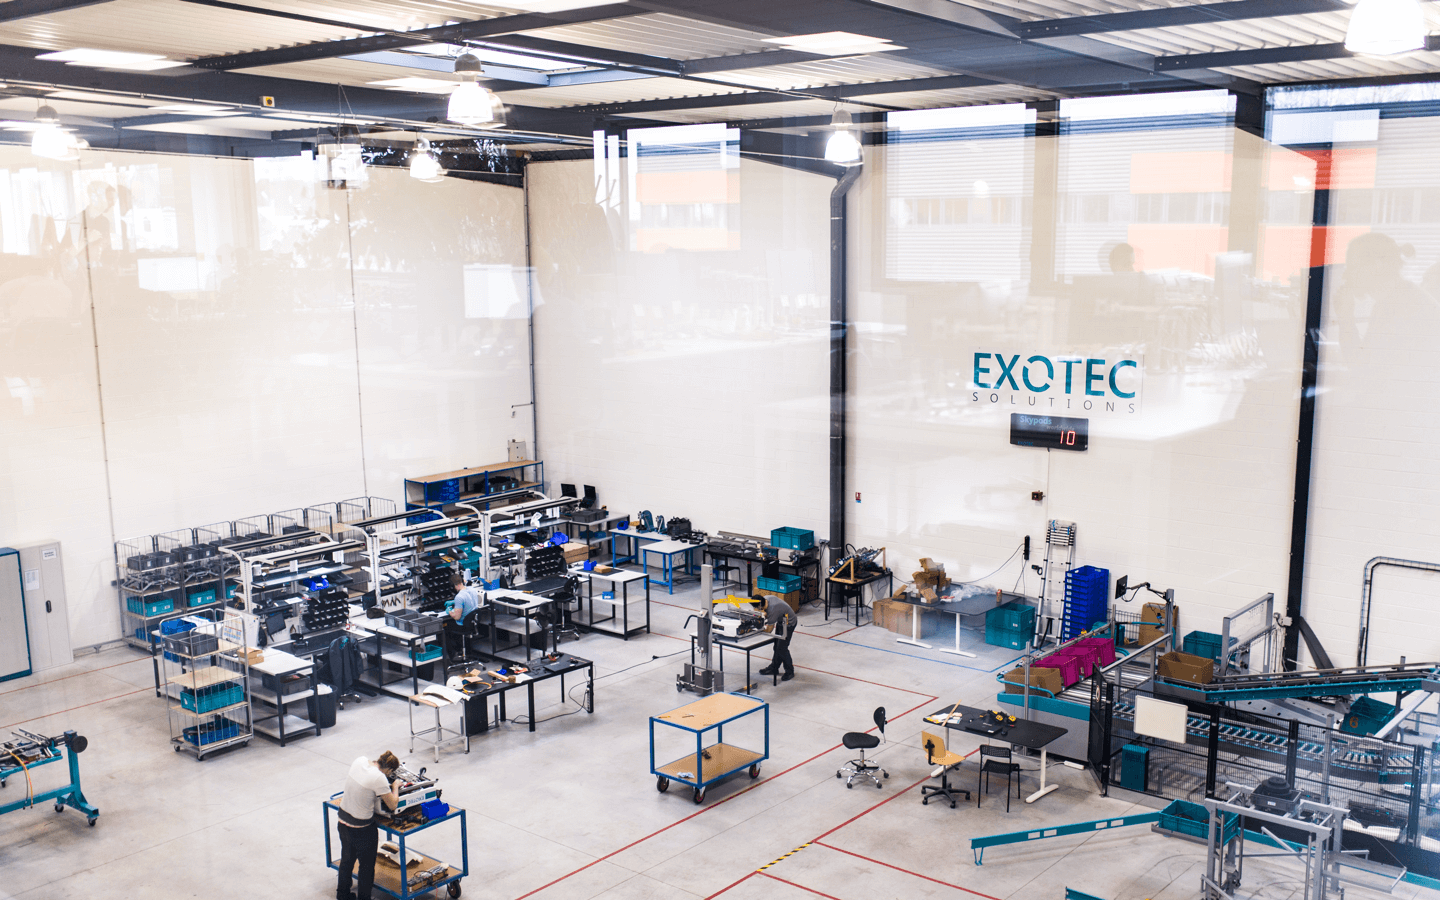 the robotics company Exotec